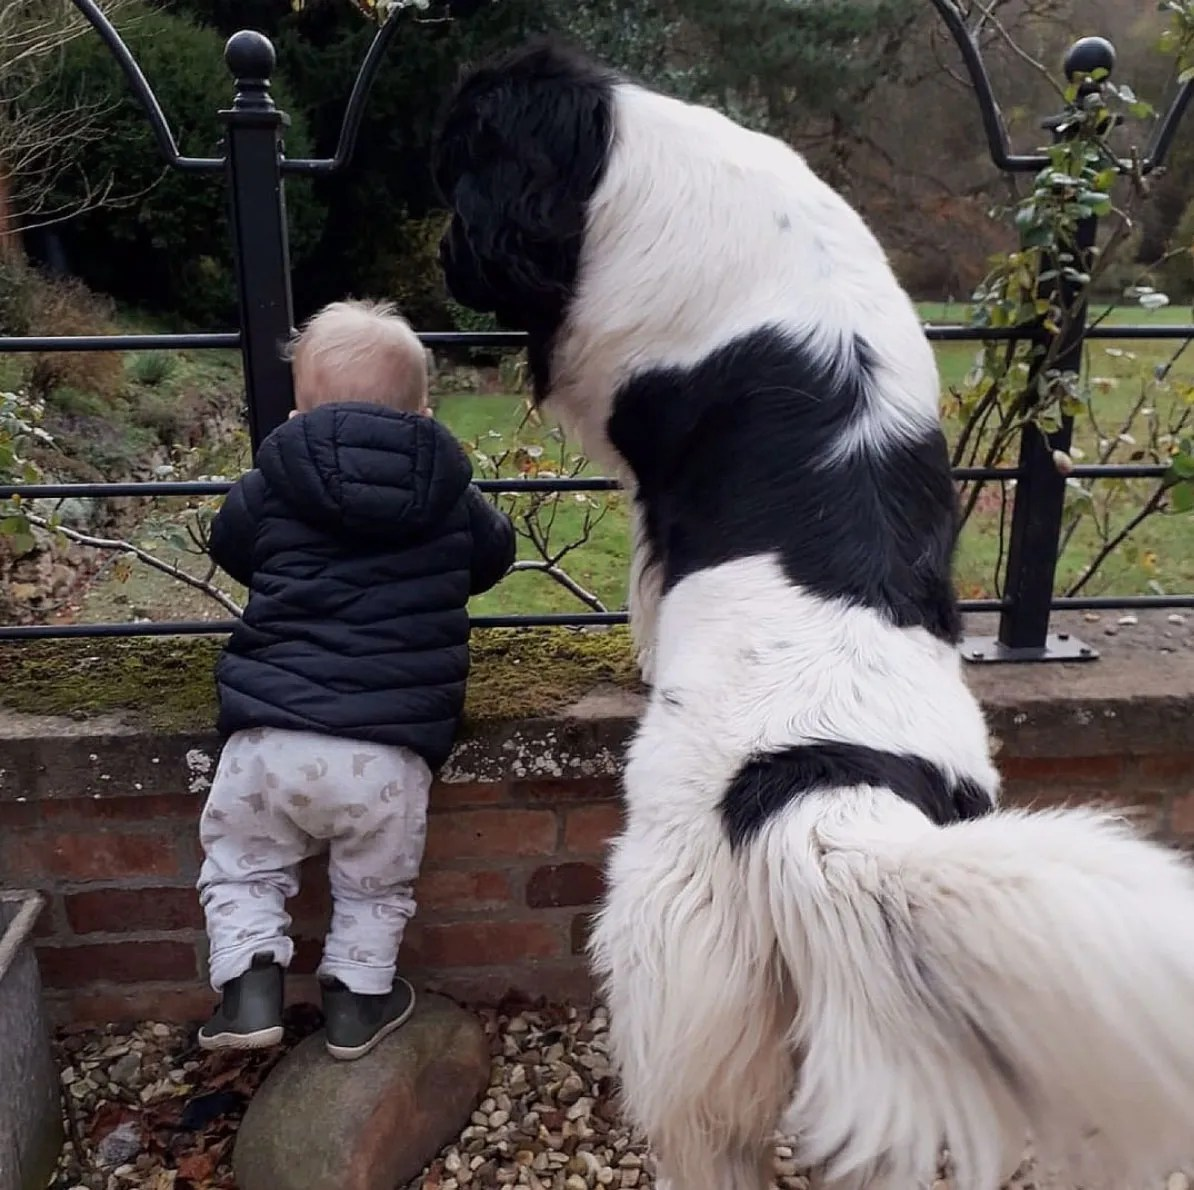 Ed Stafford and Laura Bingham's son Ranulph Stafford with one of their Newfoundland dogs in the garden of their Leicestershire home